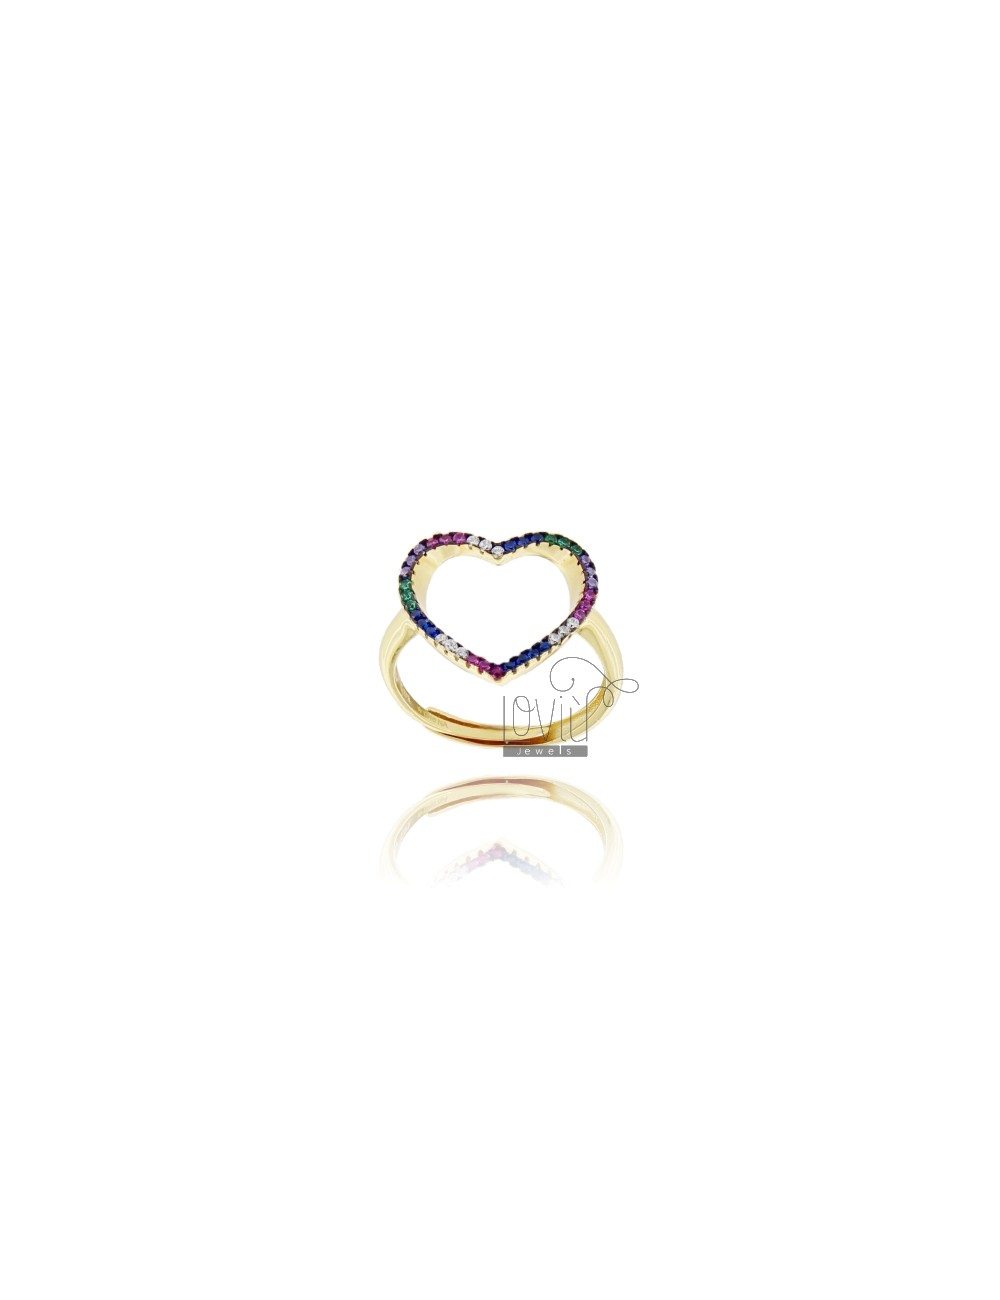 CONTOUR RING HEART IN GOLDEN SILVER TIT 925 AND RAINBOW ZIRCONIA ADJUSTABLE MEASURE